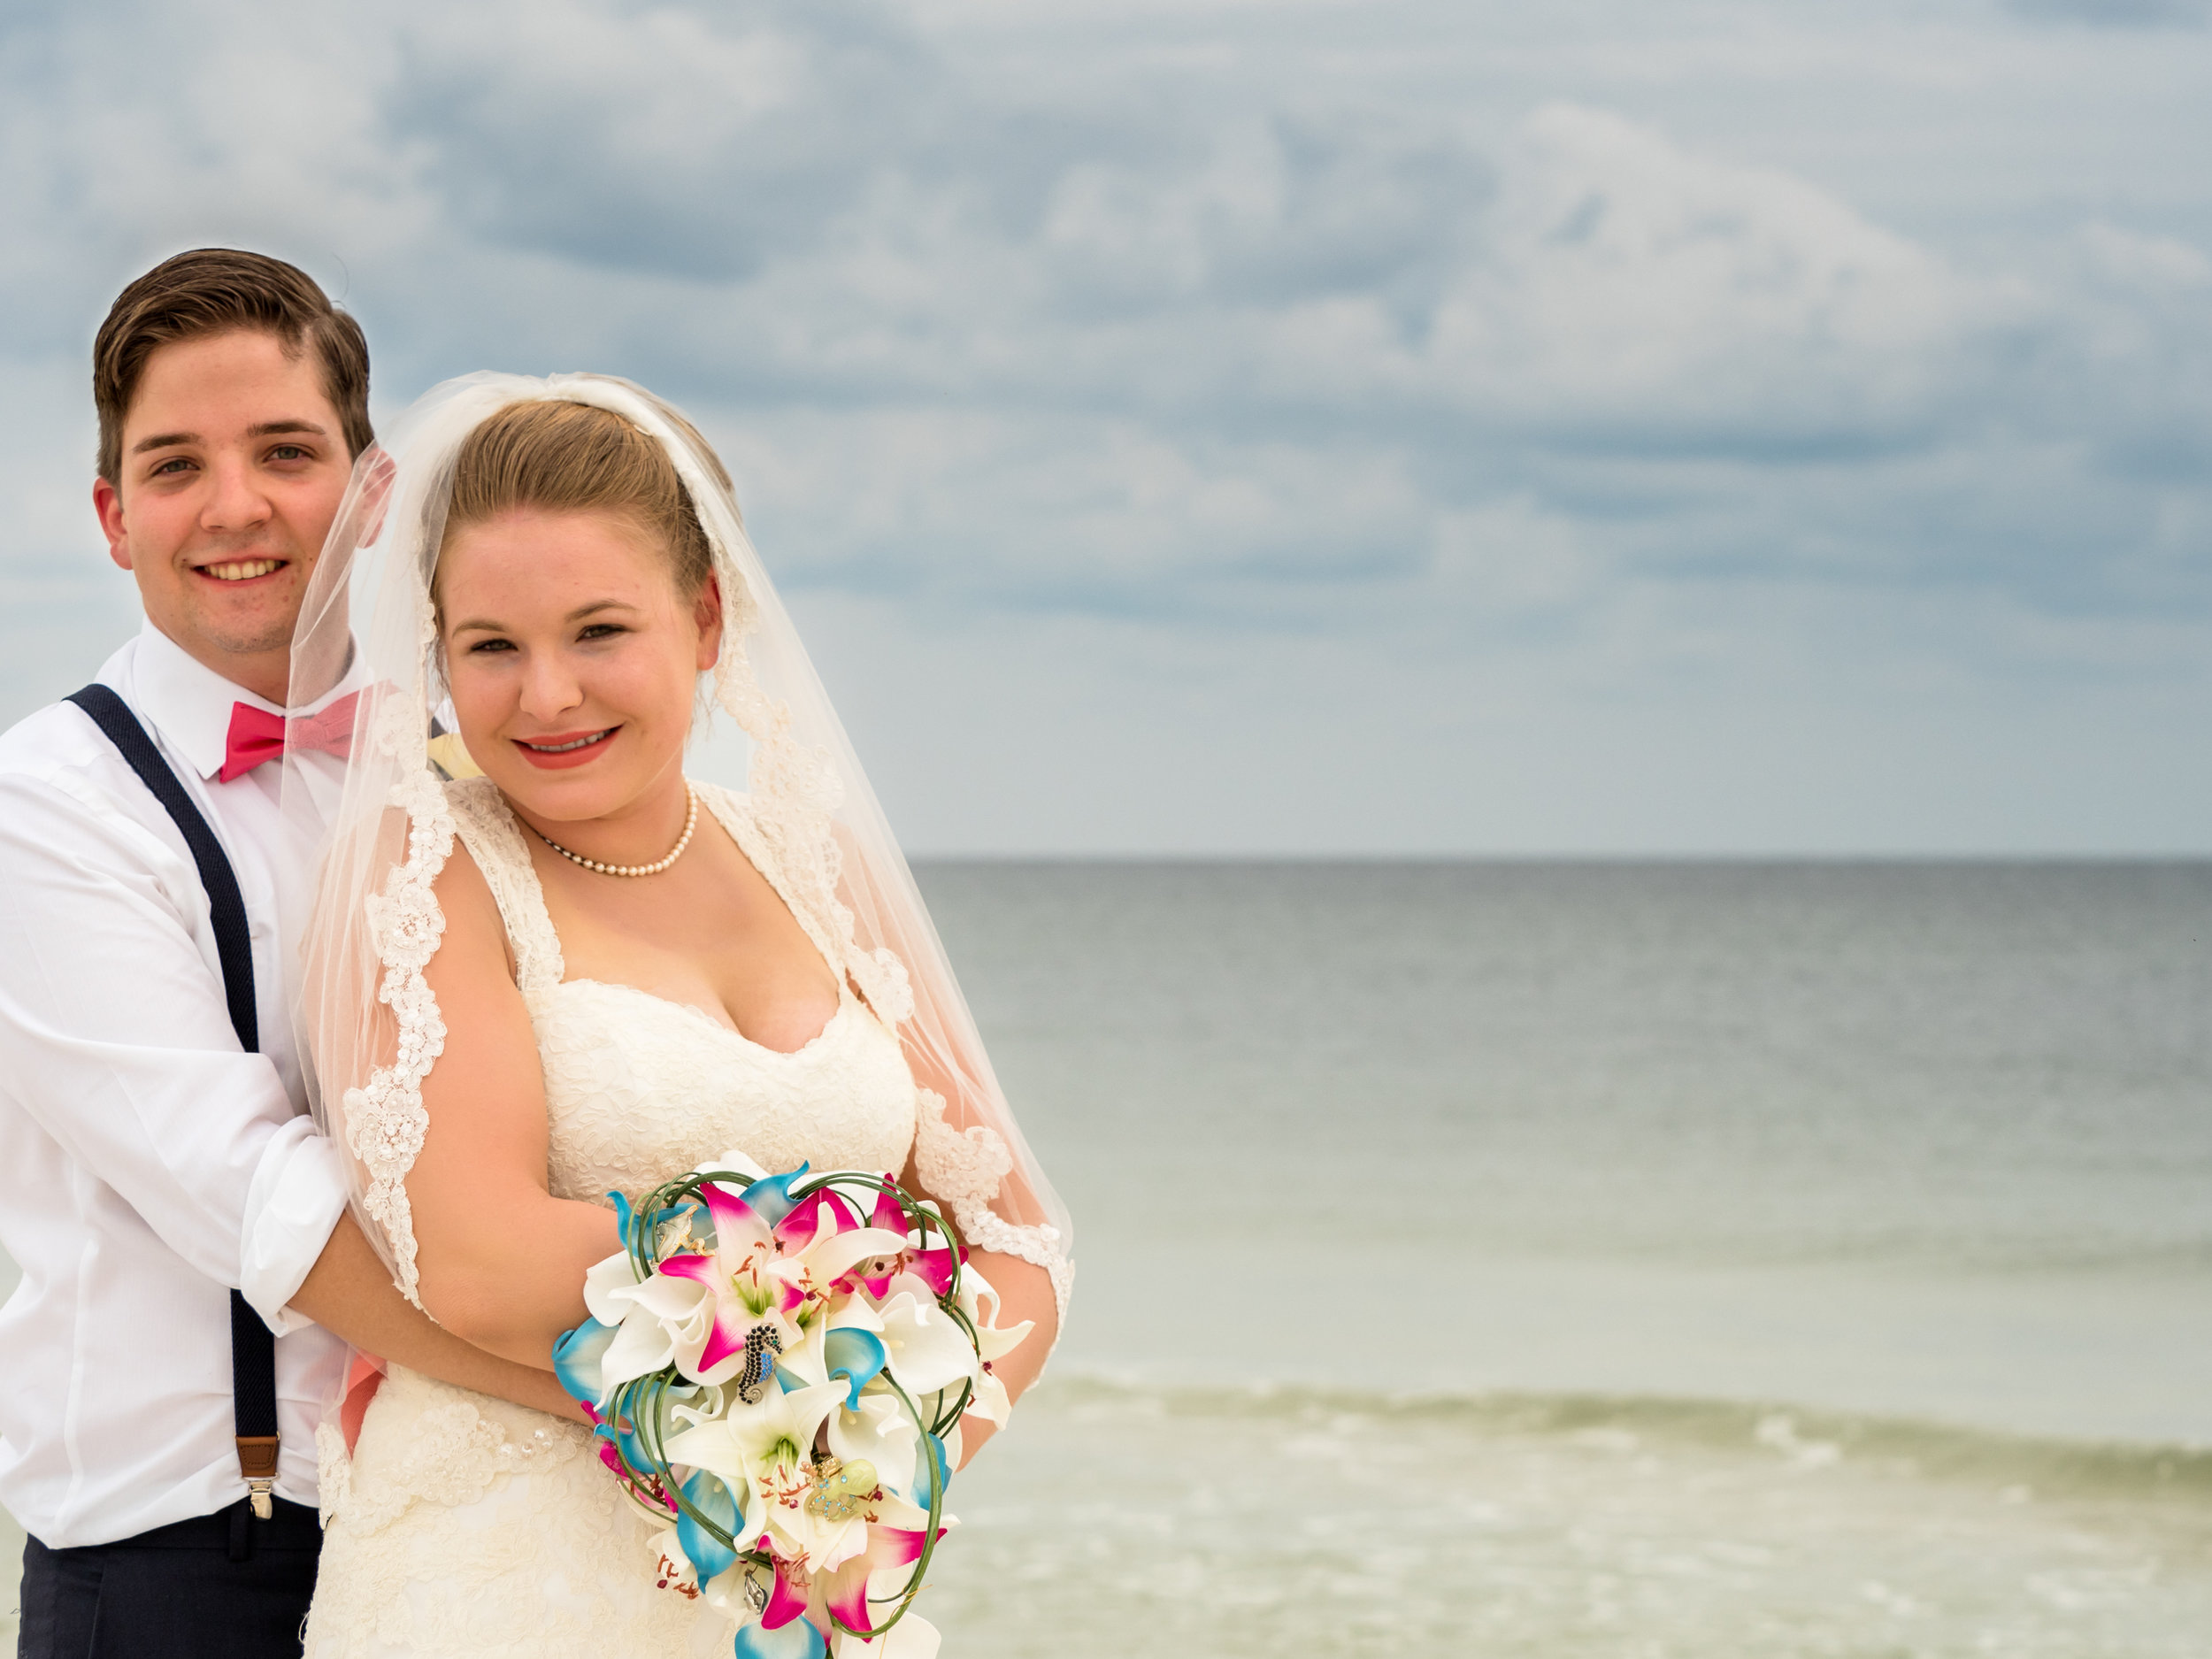 Full Service Photography Studio - Still Waiting to Print Your Digitals of Your Wedding or Portrait Session? We Guide You Through the Steps to Make Your Memories REAL.